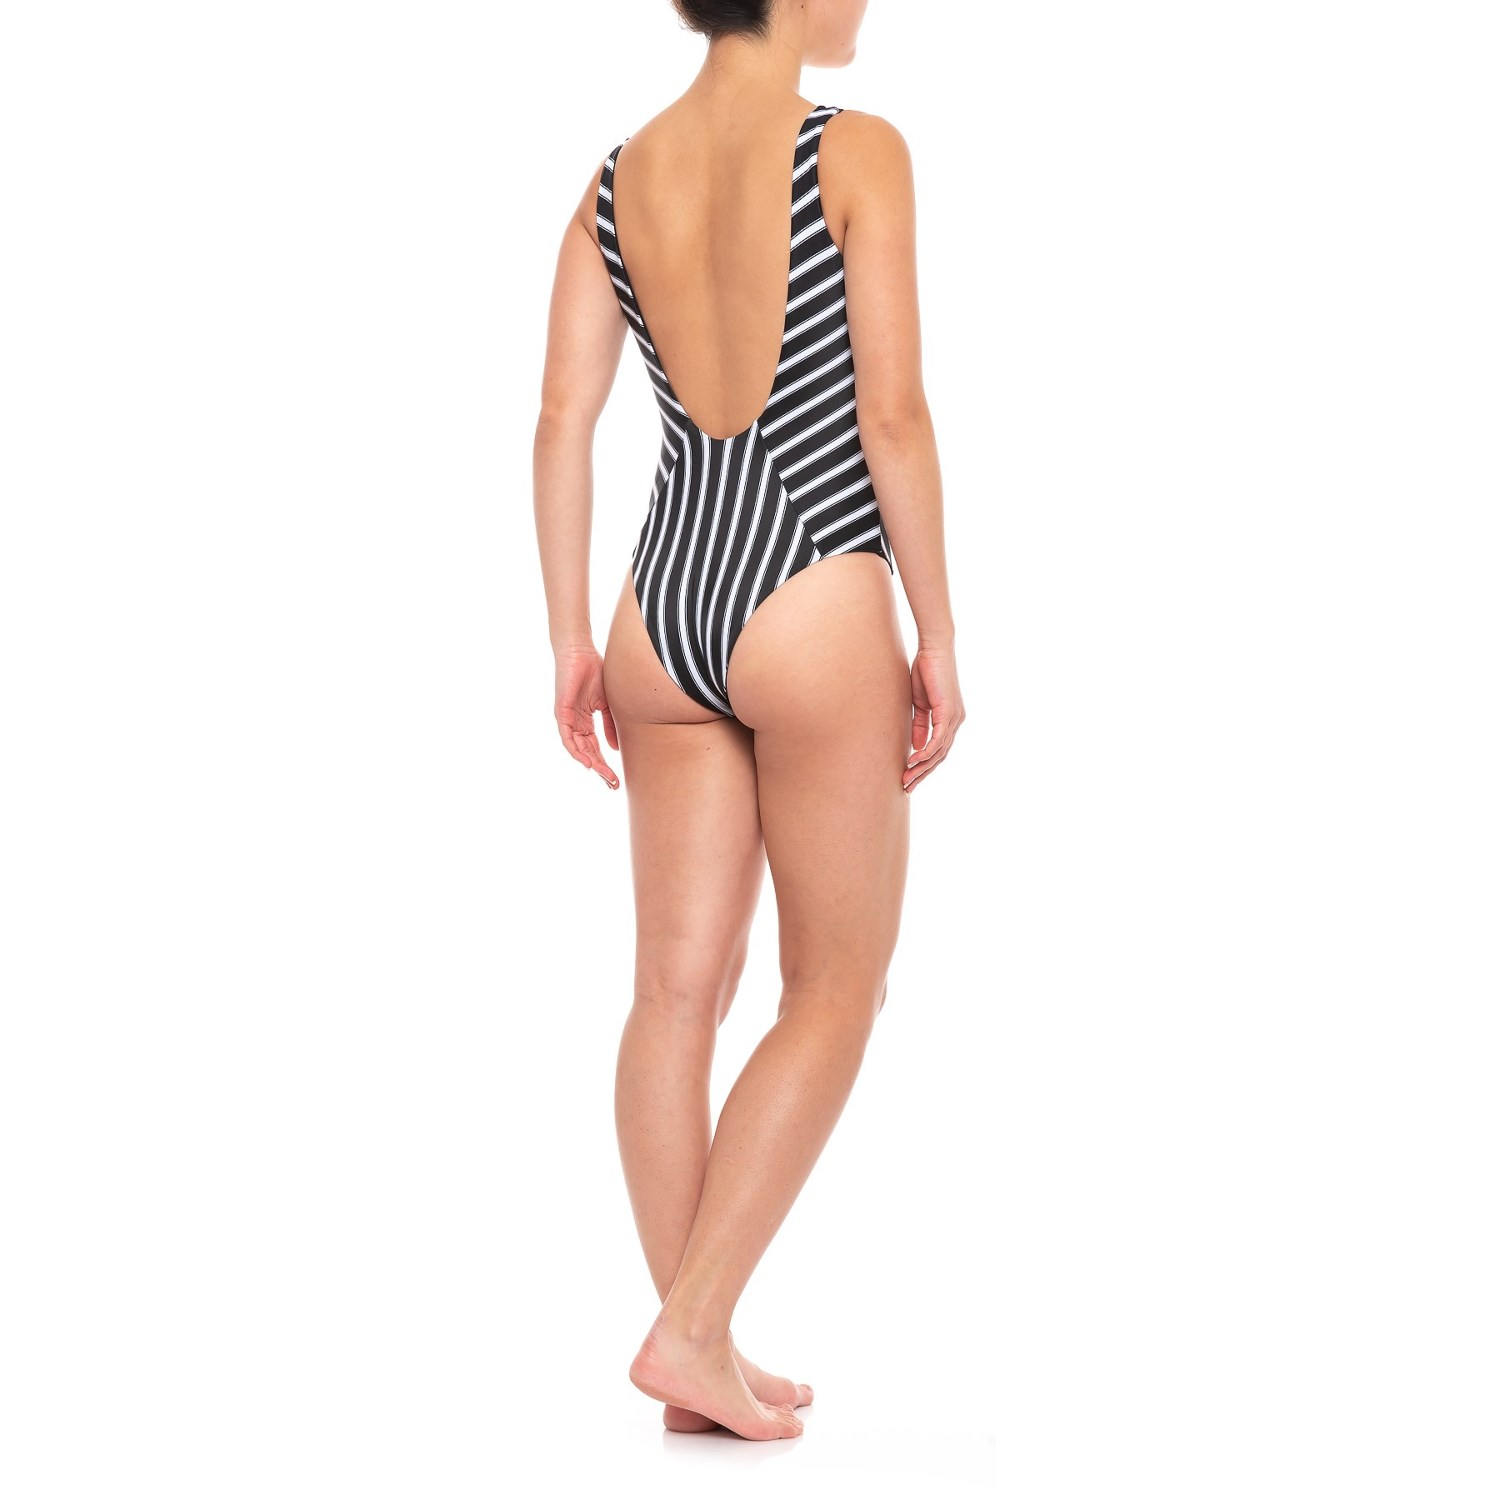 8a398849e6c04 Tori Praver Genevie One-Piece Swimsuit (For Women) - Save 50%